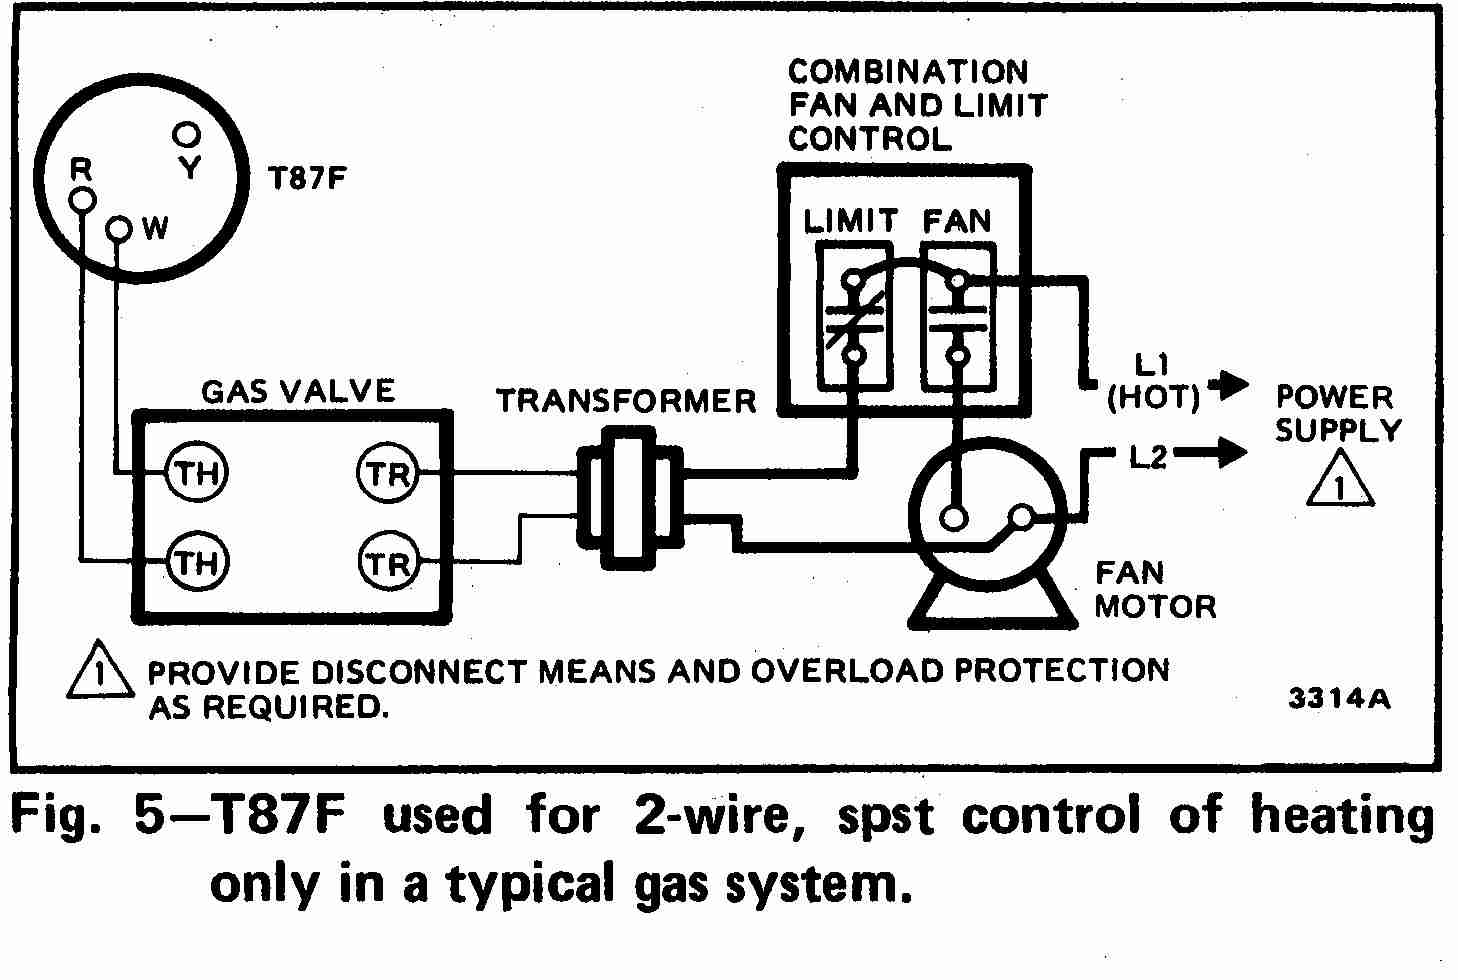 wiring diagram for central heating room thermostat with Duct Booster Fan Wiring Diagram on Duct Booster Fan Wiring Diagram further Carrier Circuit Board Wiring Diagram as well Wiring Diagram For Central Heat moreover Y Plan Biflow Wiring Diagram moreover T24610654 Wiring diagram ruud uapa 036jaz.